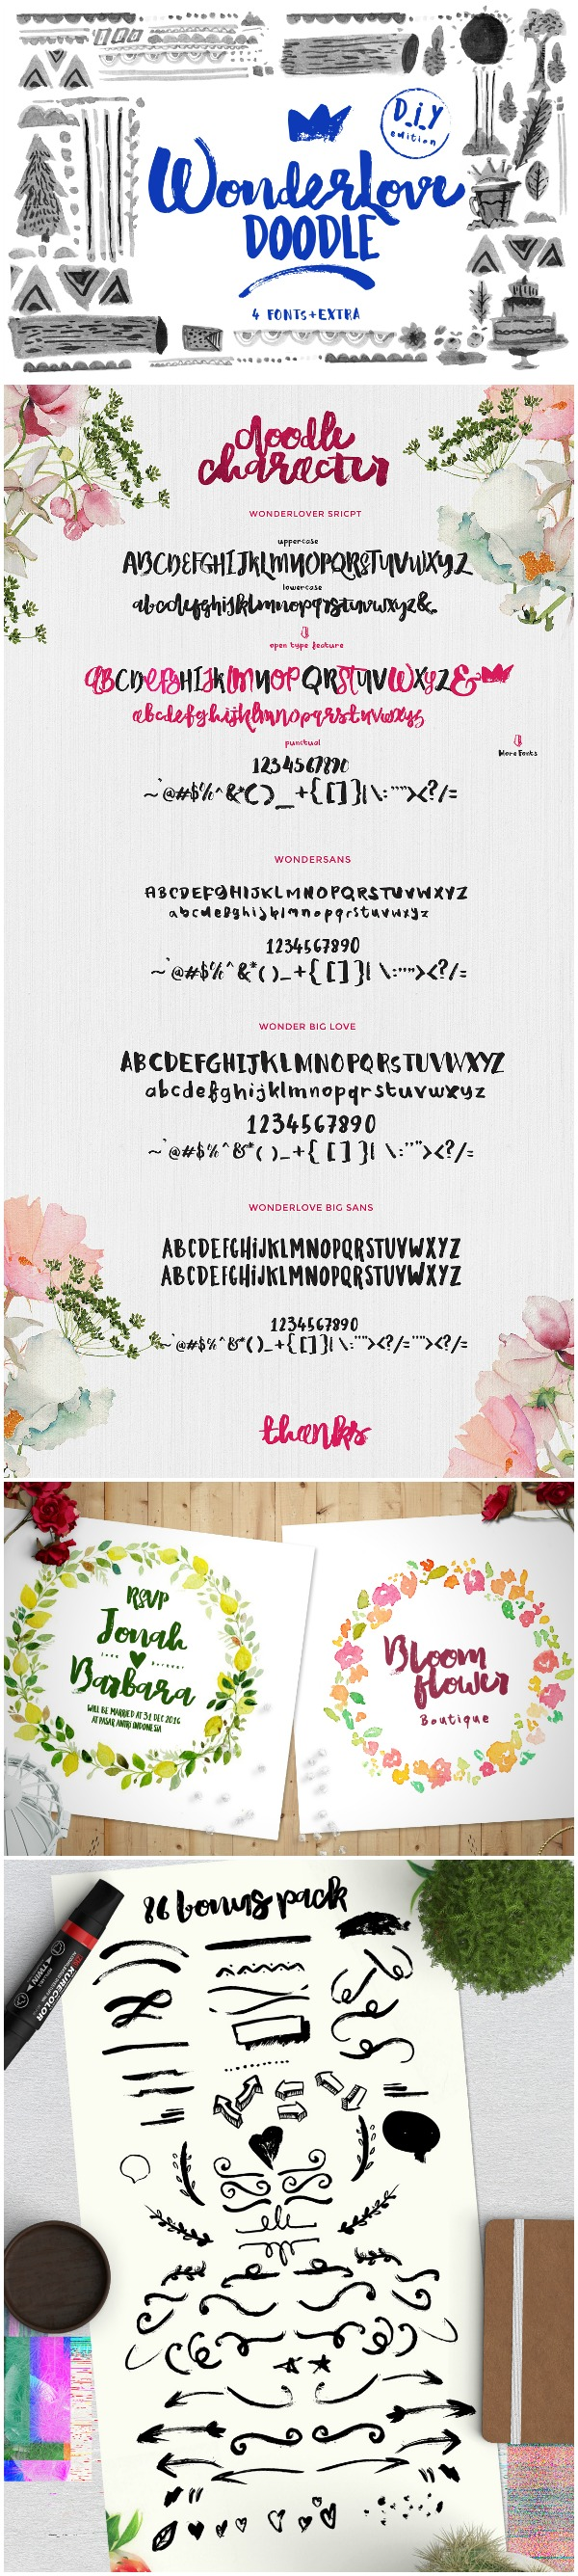 Favorite Fonts: Wonderlove Font. This bold brush font makes casual look elegant!